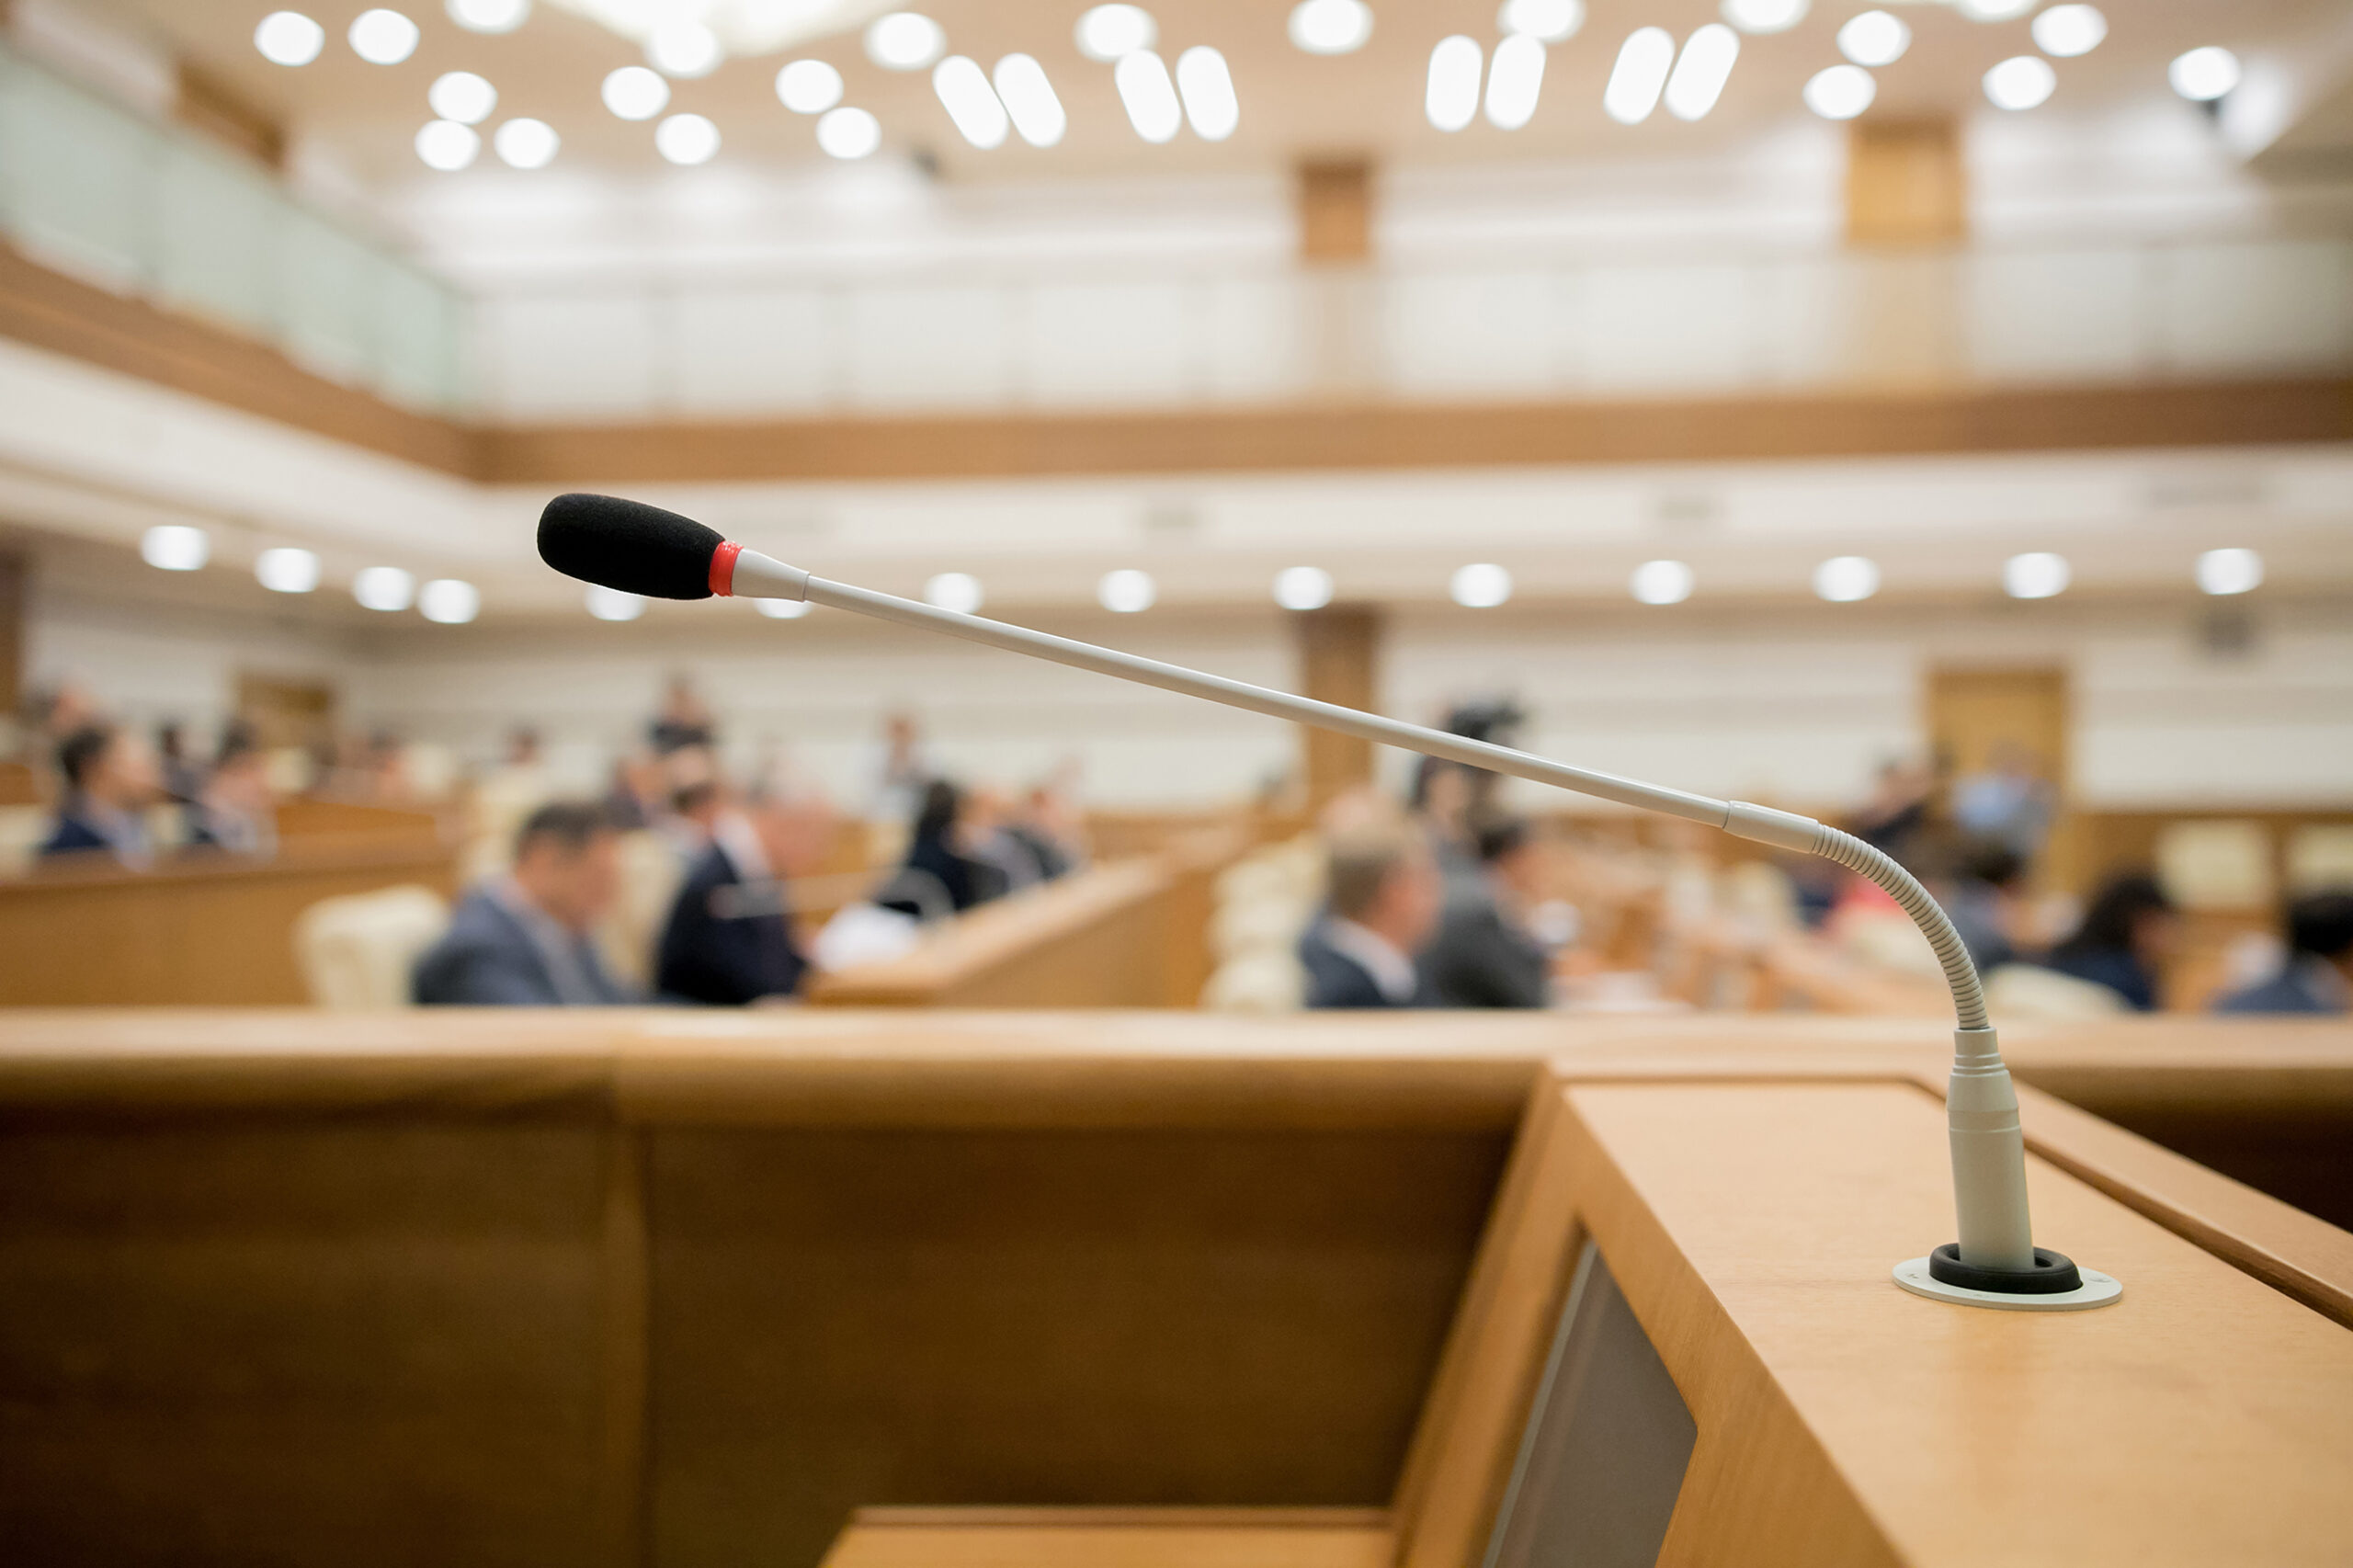 Session of Government. Conference room or seminar meeting room in business event. Academic classroom training course in lecture hall. blurred businessmen talking. modern bright office indoor